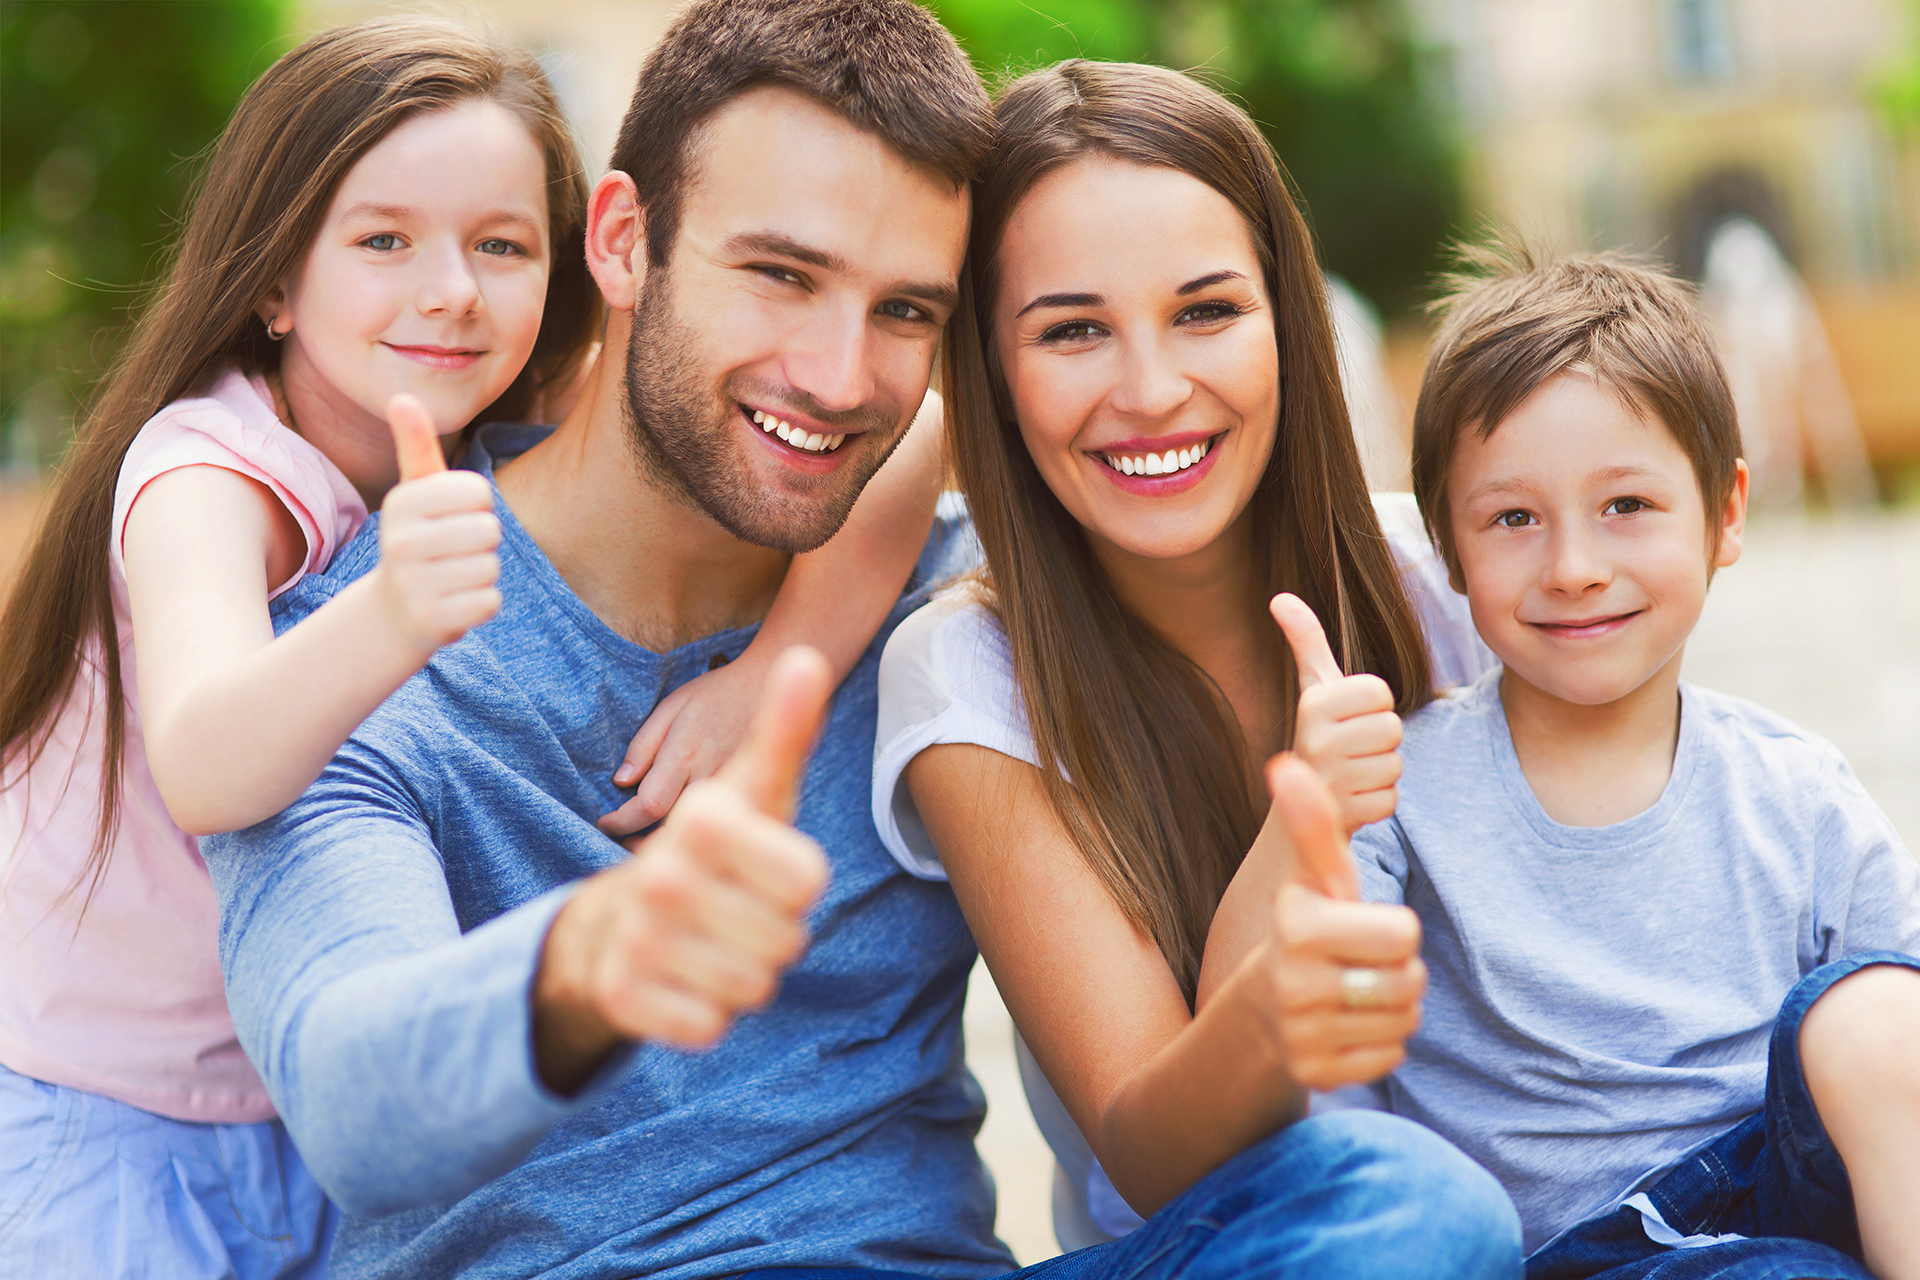 A Family Holding Thumbs Up In Comfort By Knowing the Law Provides Various Family Law Rights